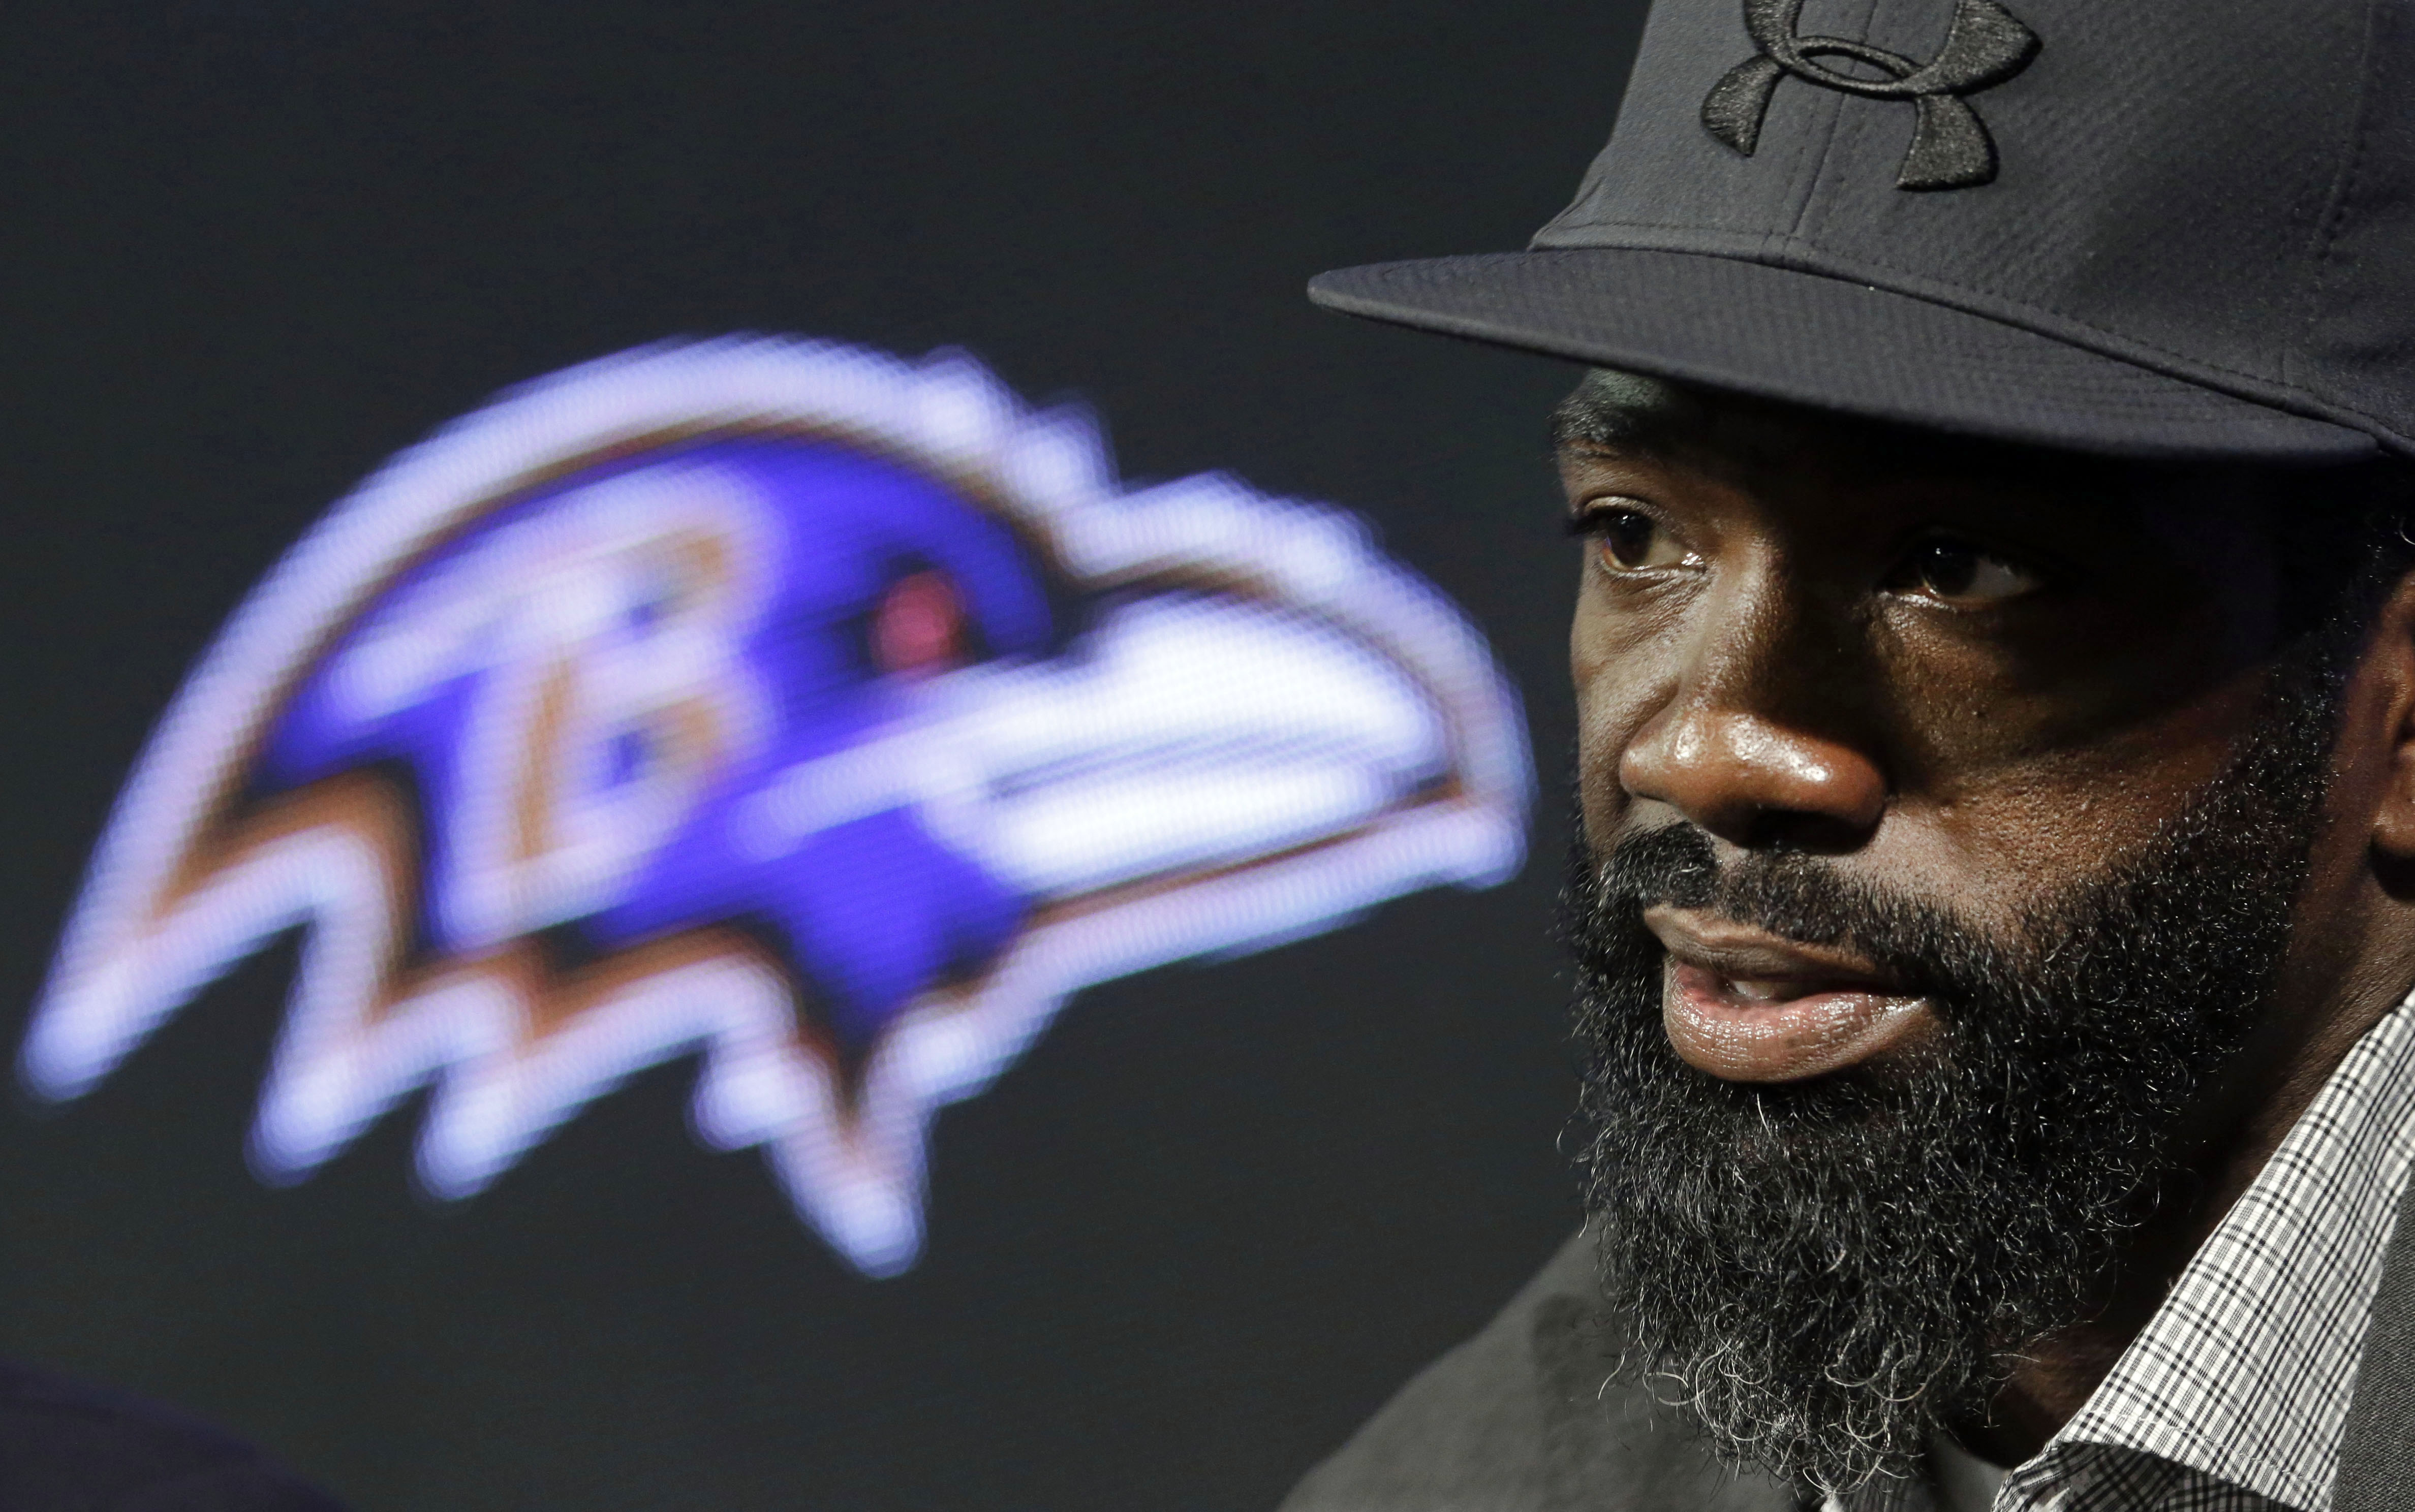 FILE - In this May 7, 2015, file photo, Baltimore Ravens safety Ed Reed speaks at an NFL football news conference announcing his retirement, in Owings Mills, Md. The Buffalo Bills announced Wednesday, Jan. 13, 2016, that Reed agreed in principle to be an